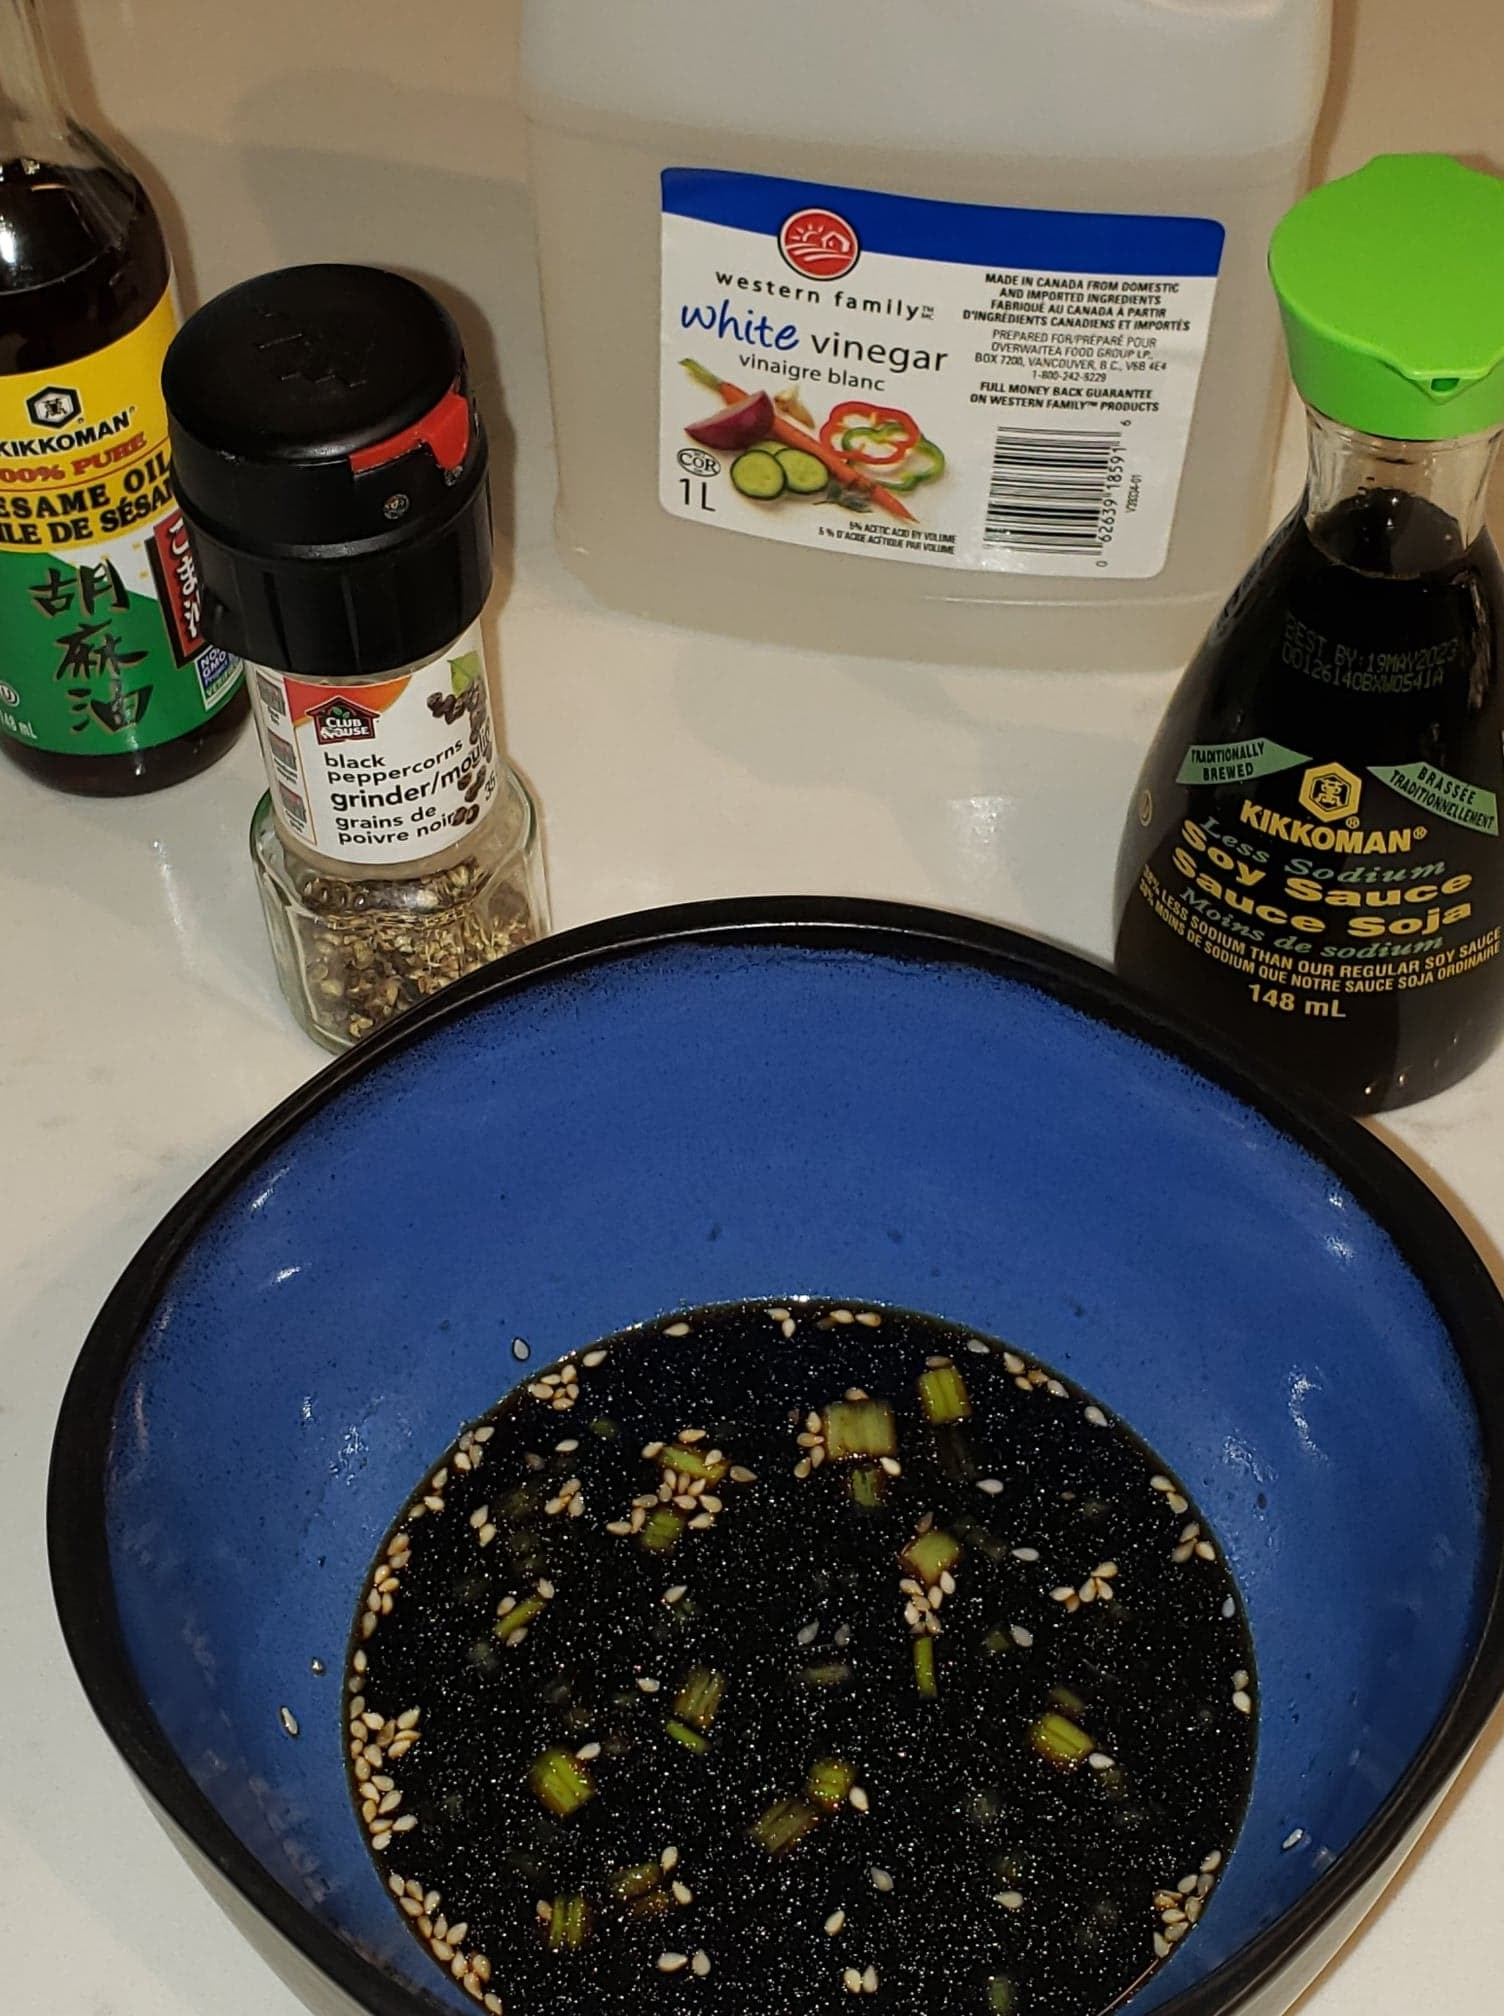 A bowl of the finished dipping sauce next to bottles of sesame oil, soy sauce, black pepper, and white vinegar